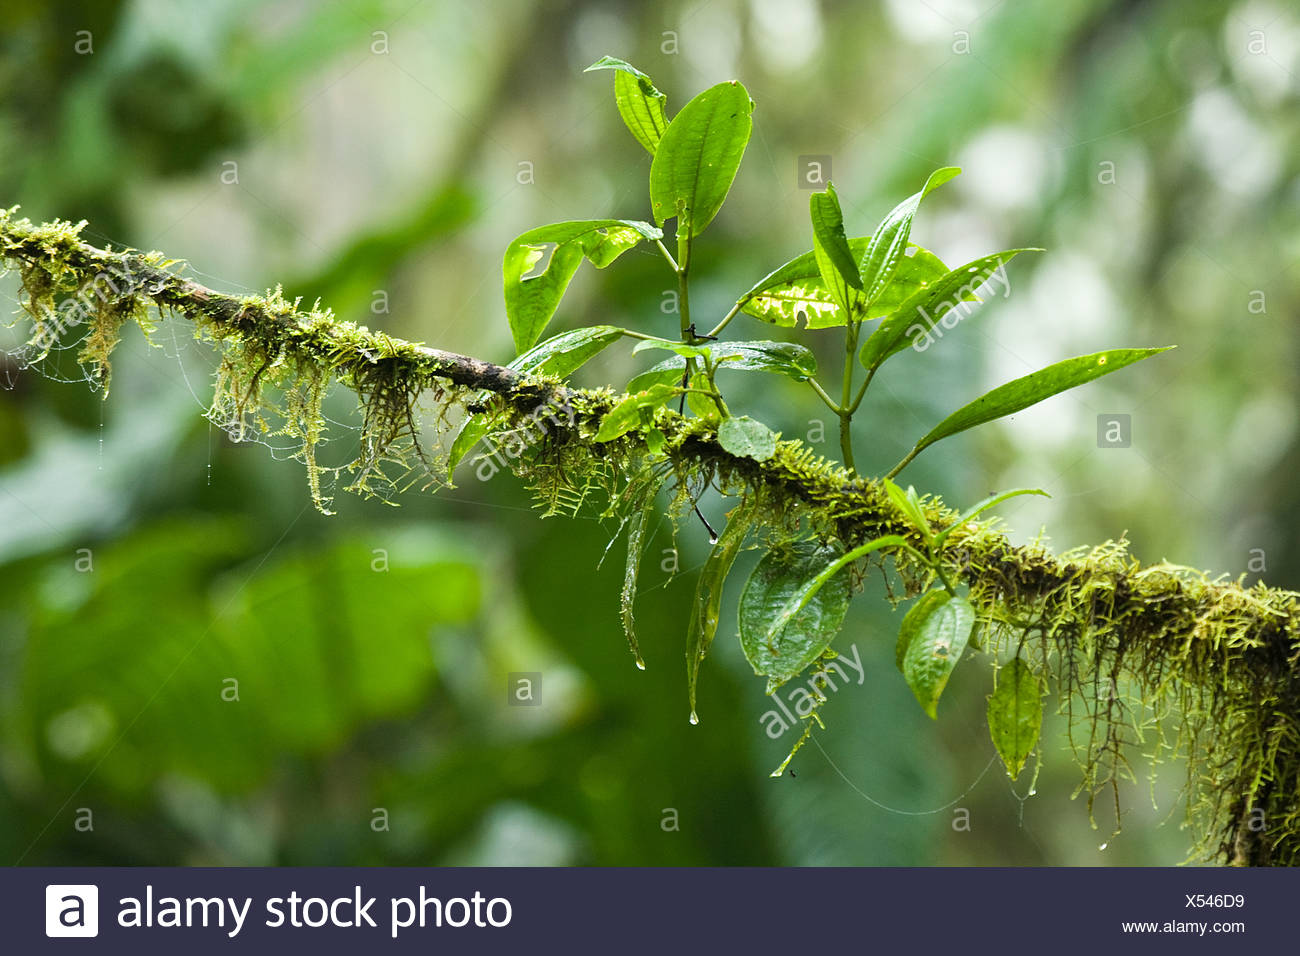 Fresh leaves growing on branch - Stock Image